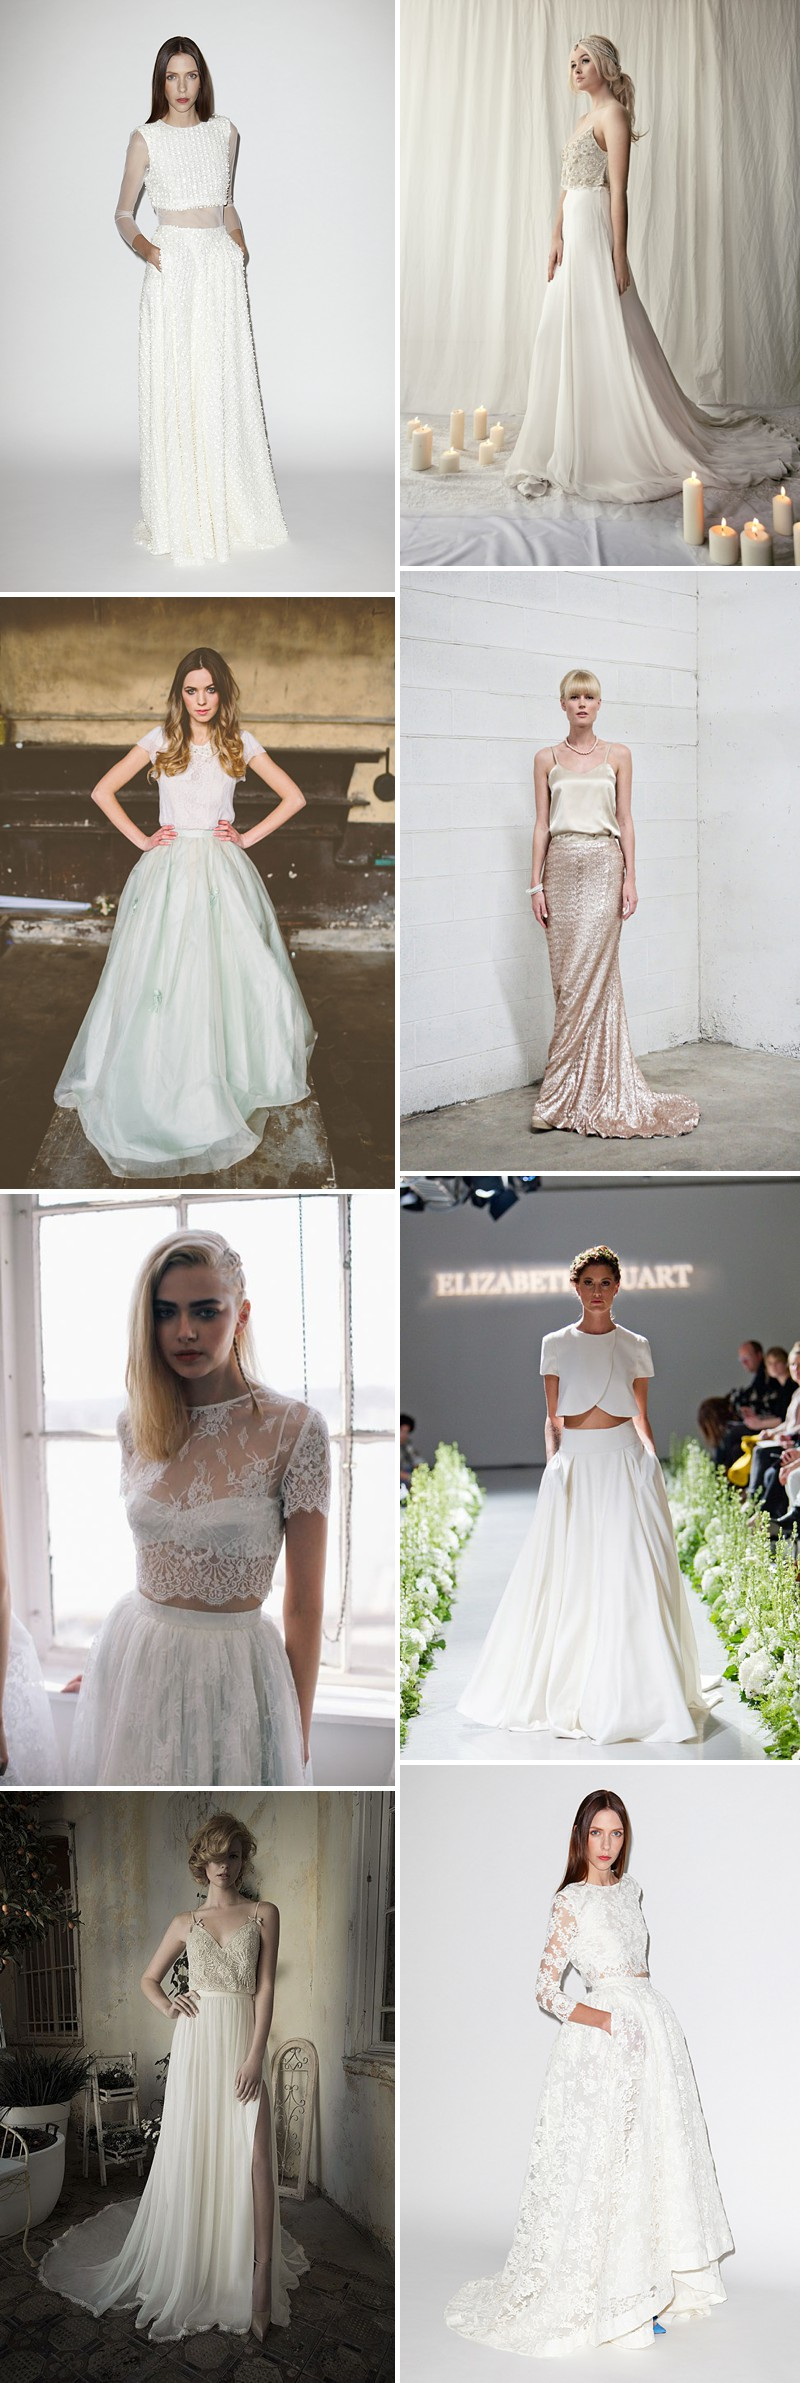 Rock My Wedding's Favourite 2014 Bridal Trends Including Statement Back Bridal Gowns, Juliet Bridal Veil And Two Piece Wedding Dresses._0001